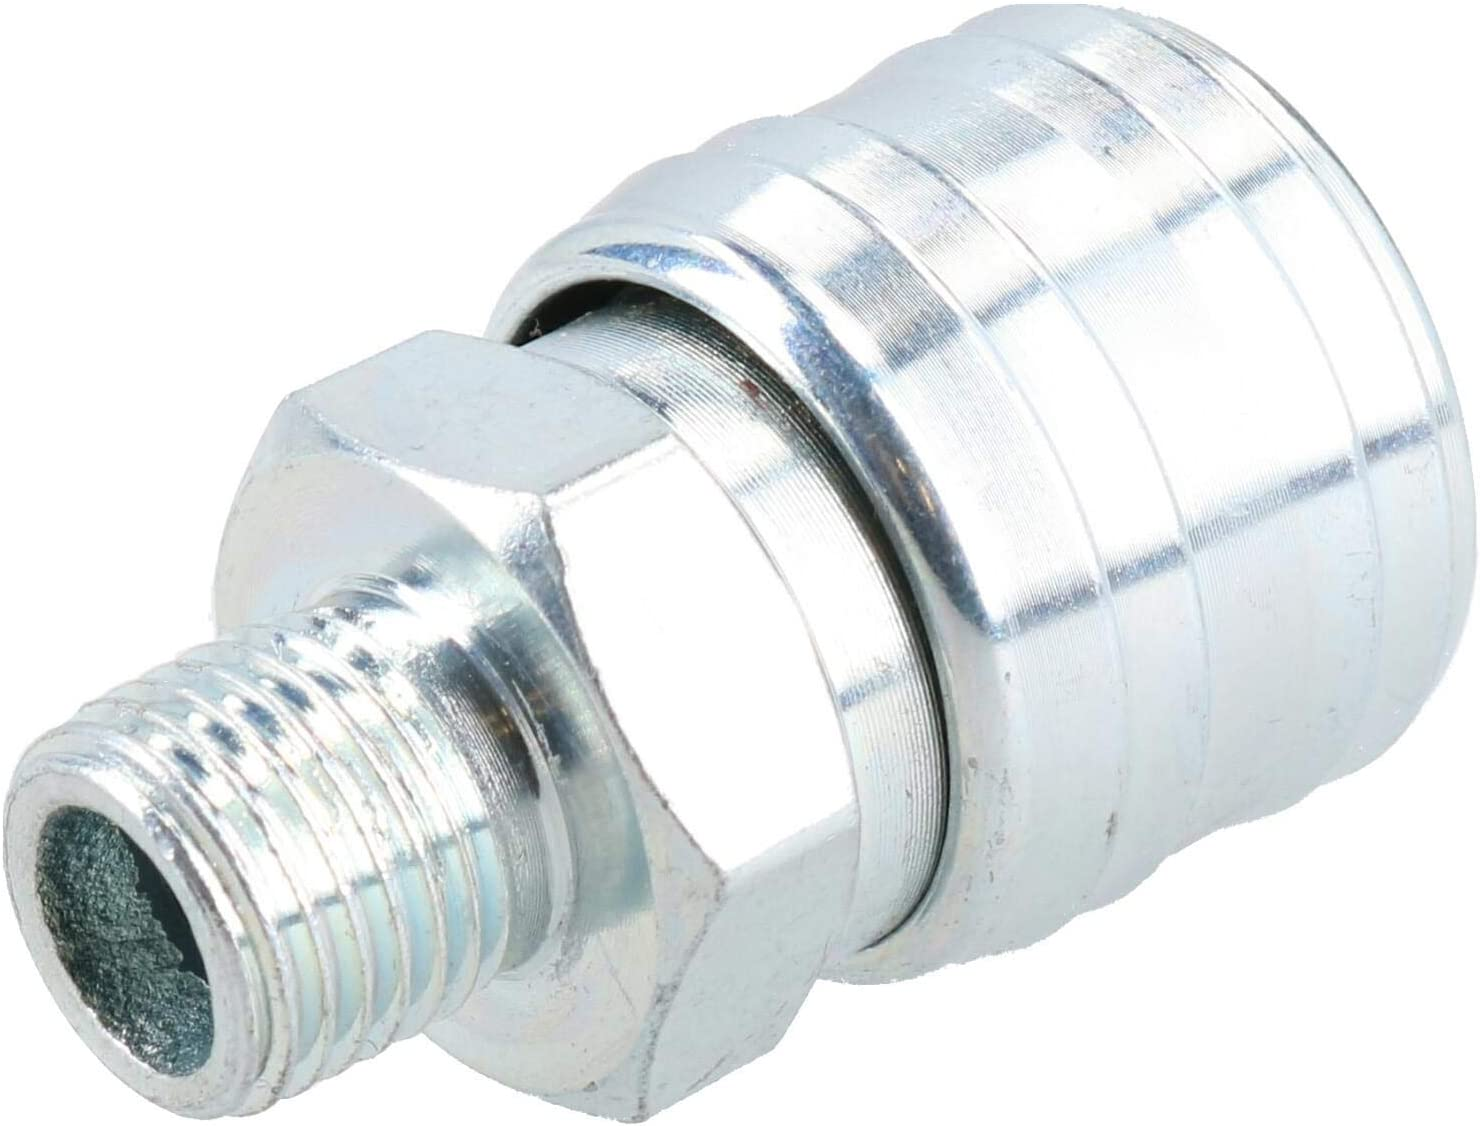 EURO Air Hose Connector Fitting Quick Release Pack With Hose Tail Barb 2pk